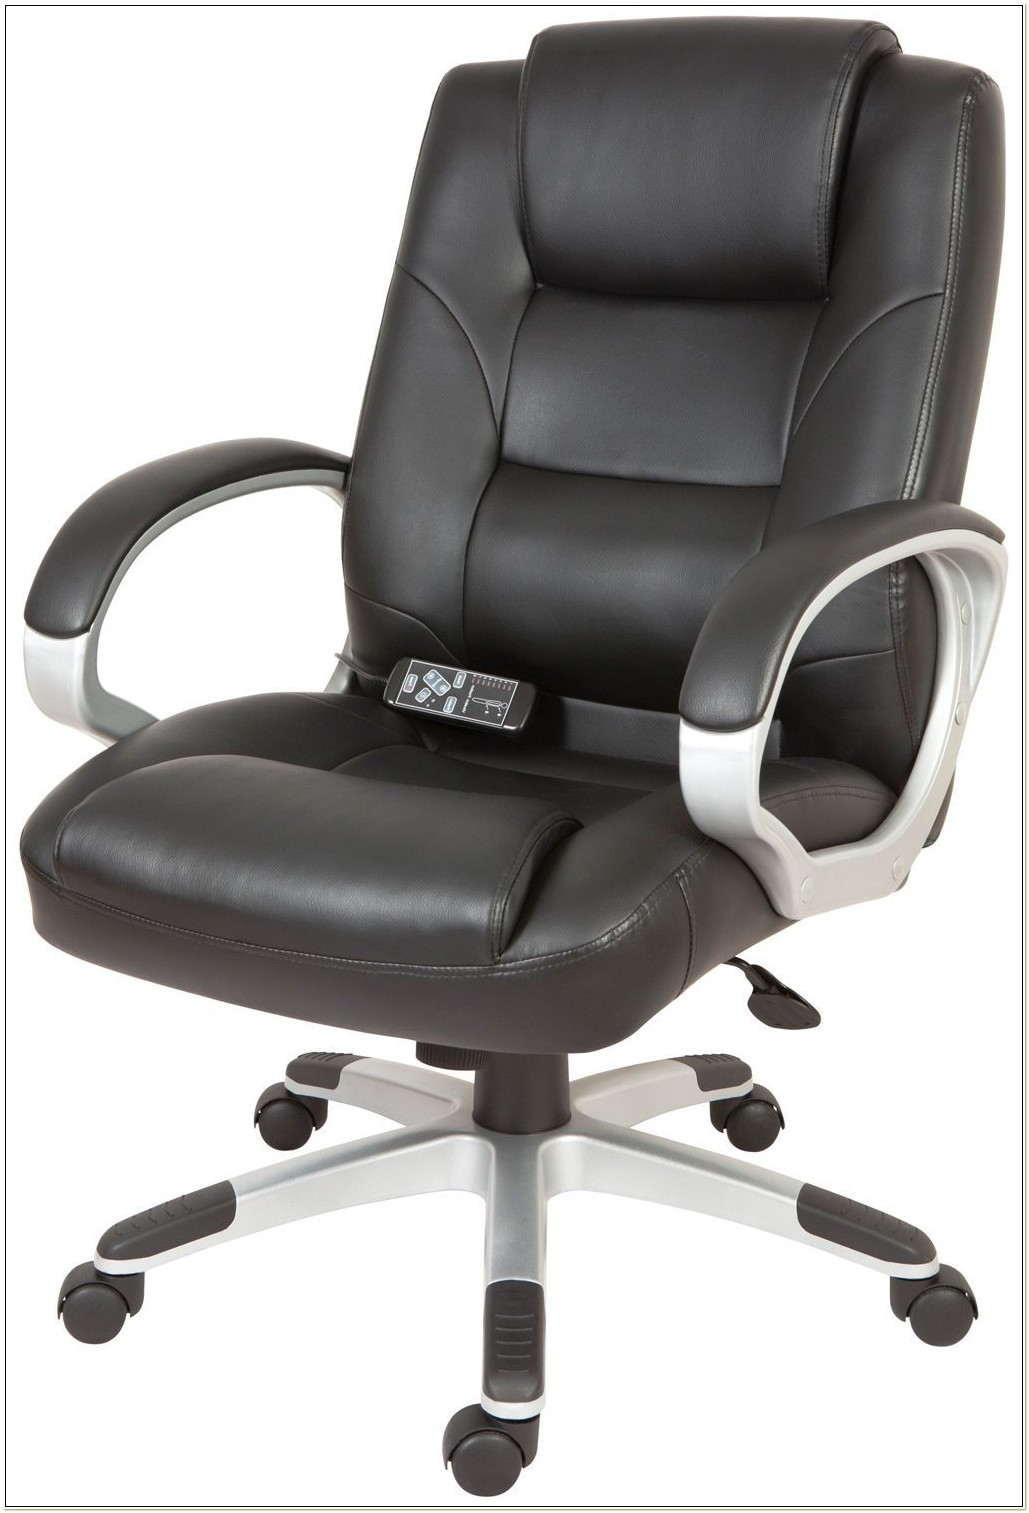 Shiatsu Executive Massage Office Chair In Black